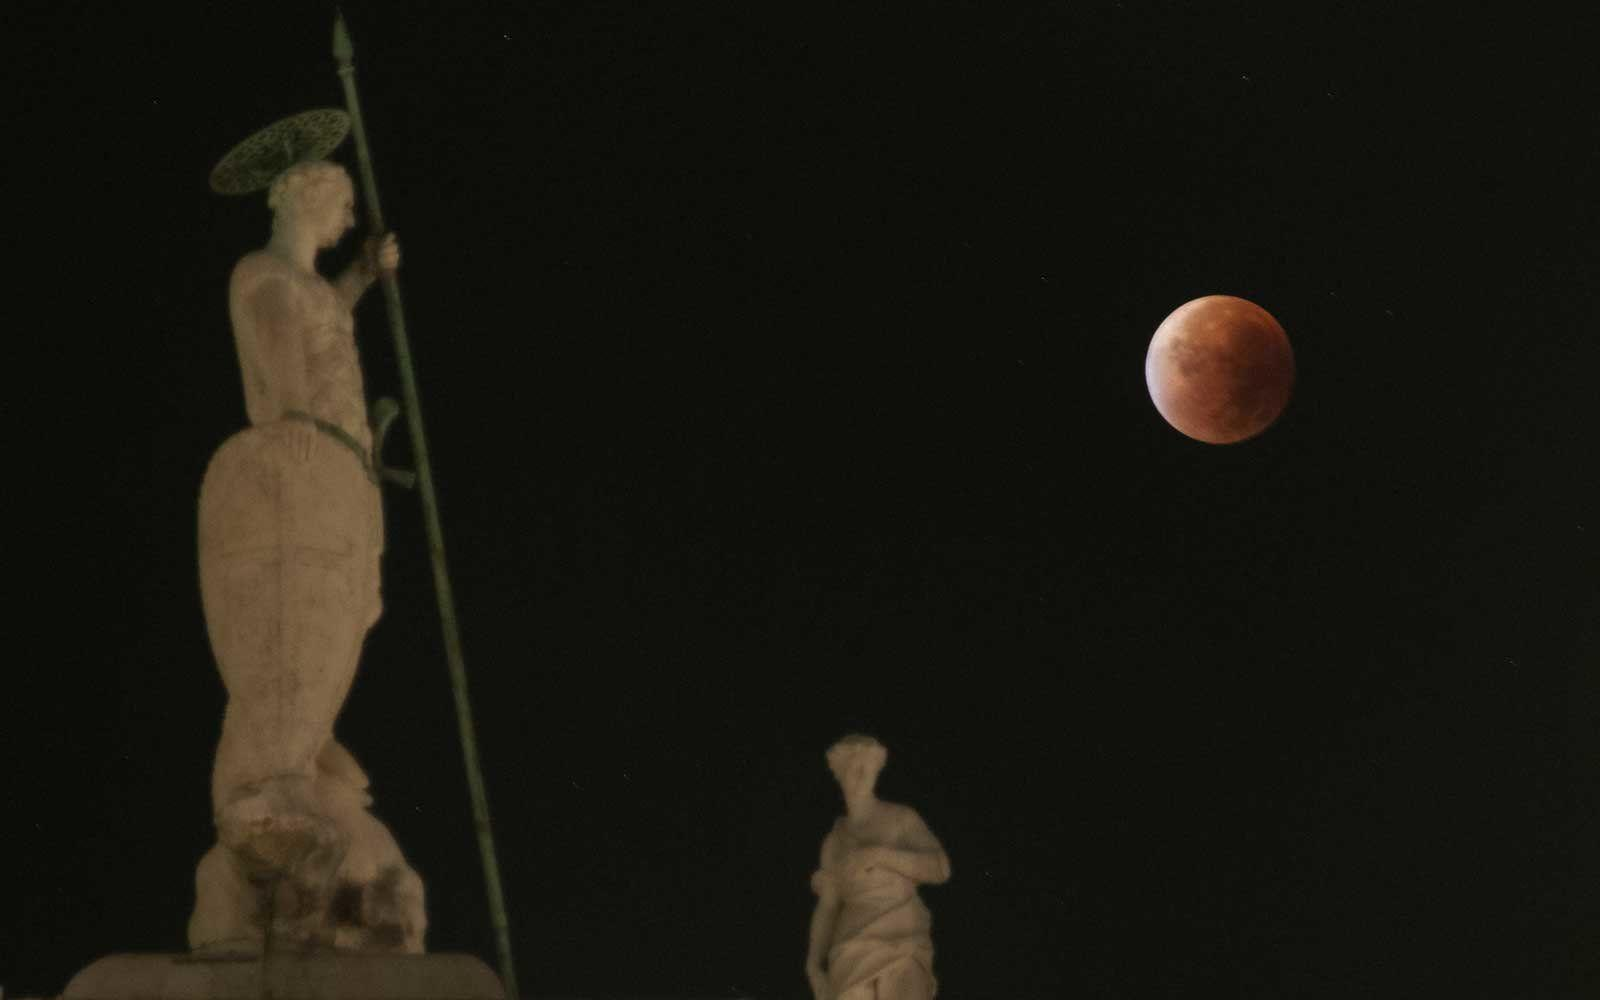 Super Blue Blood-Moon Eclipse Occurring Jan 31: How to See It ...